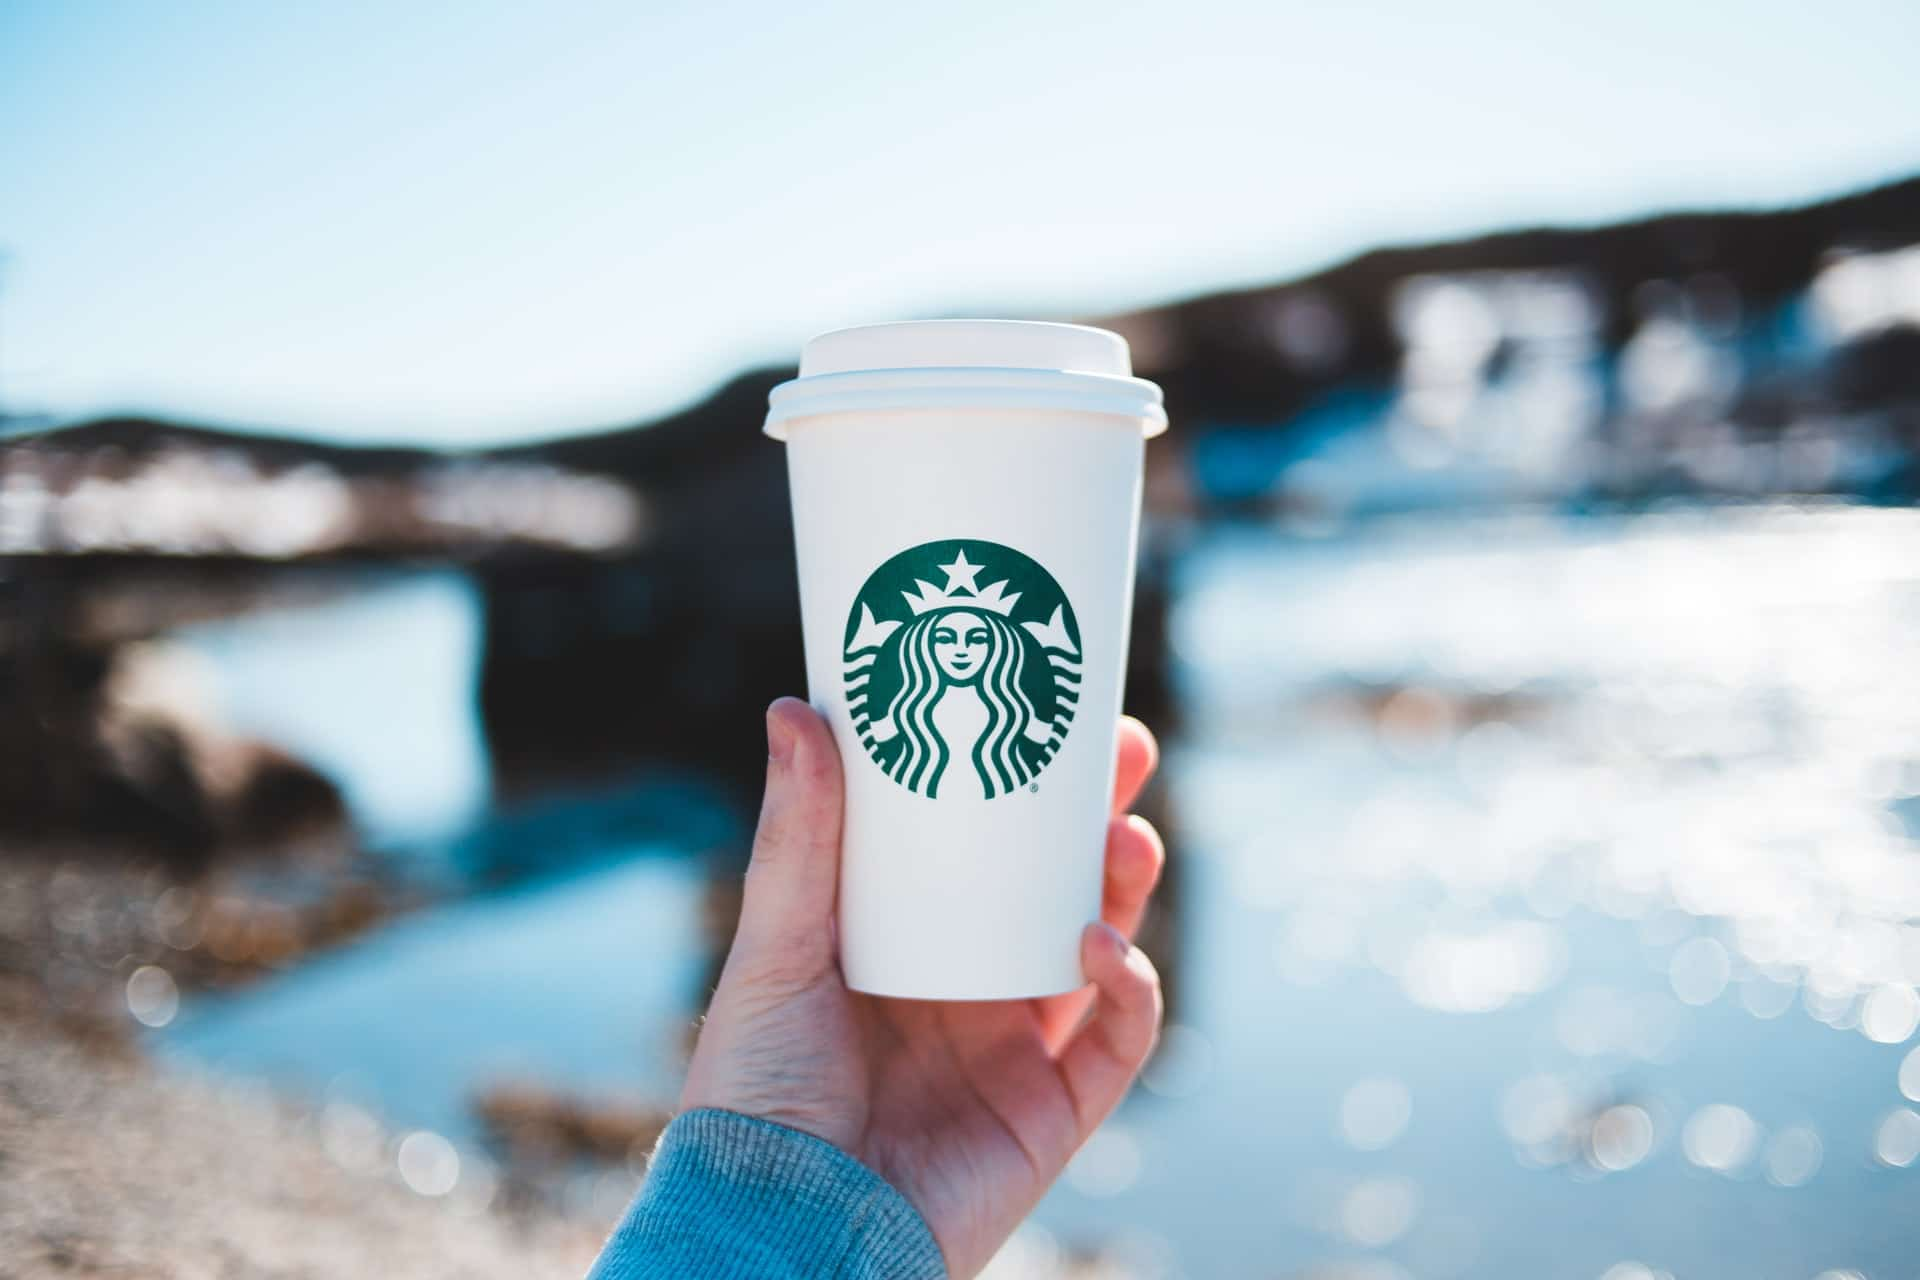 What Is the Starbucks Logo?